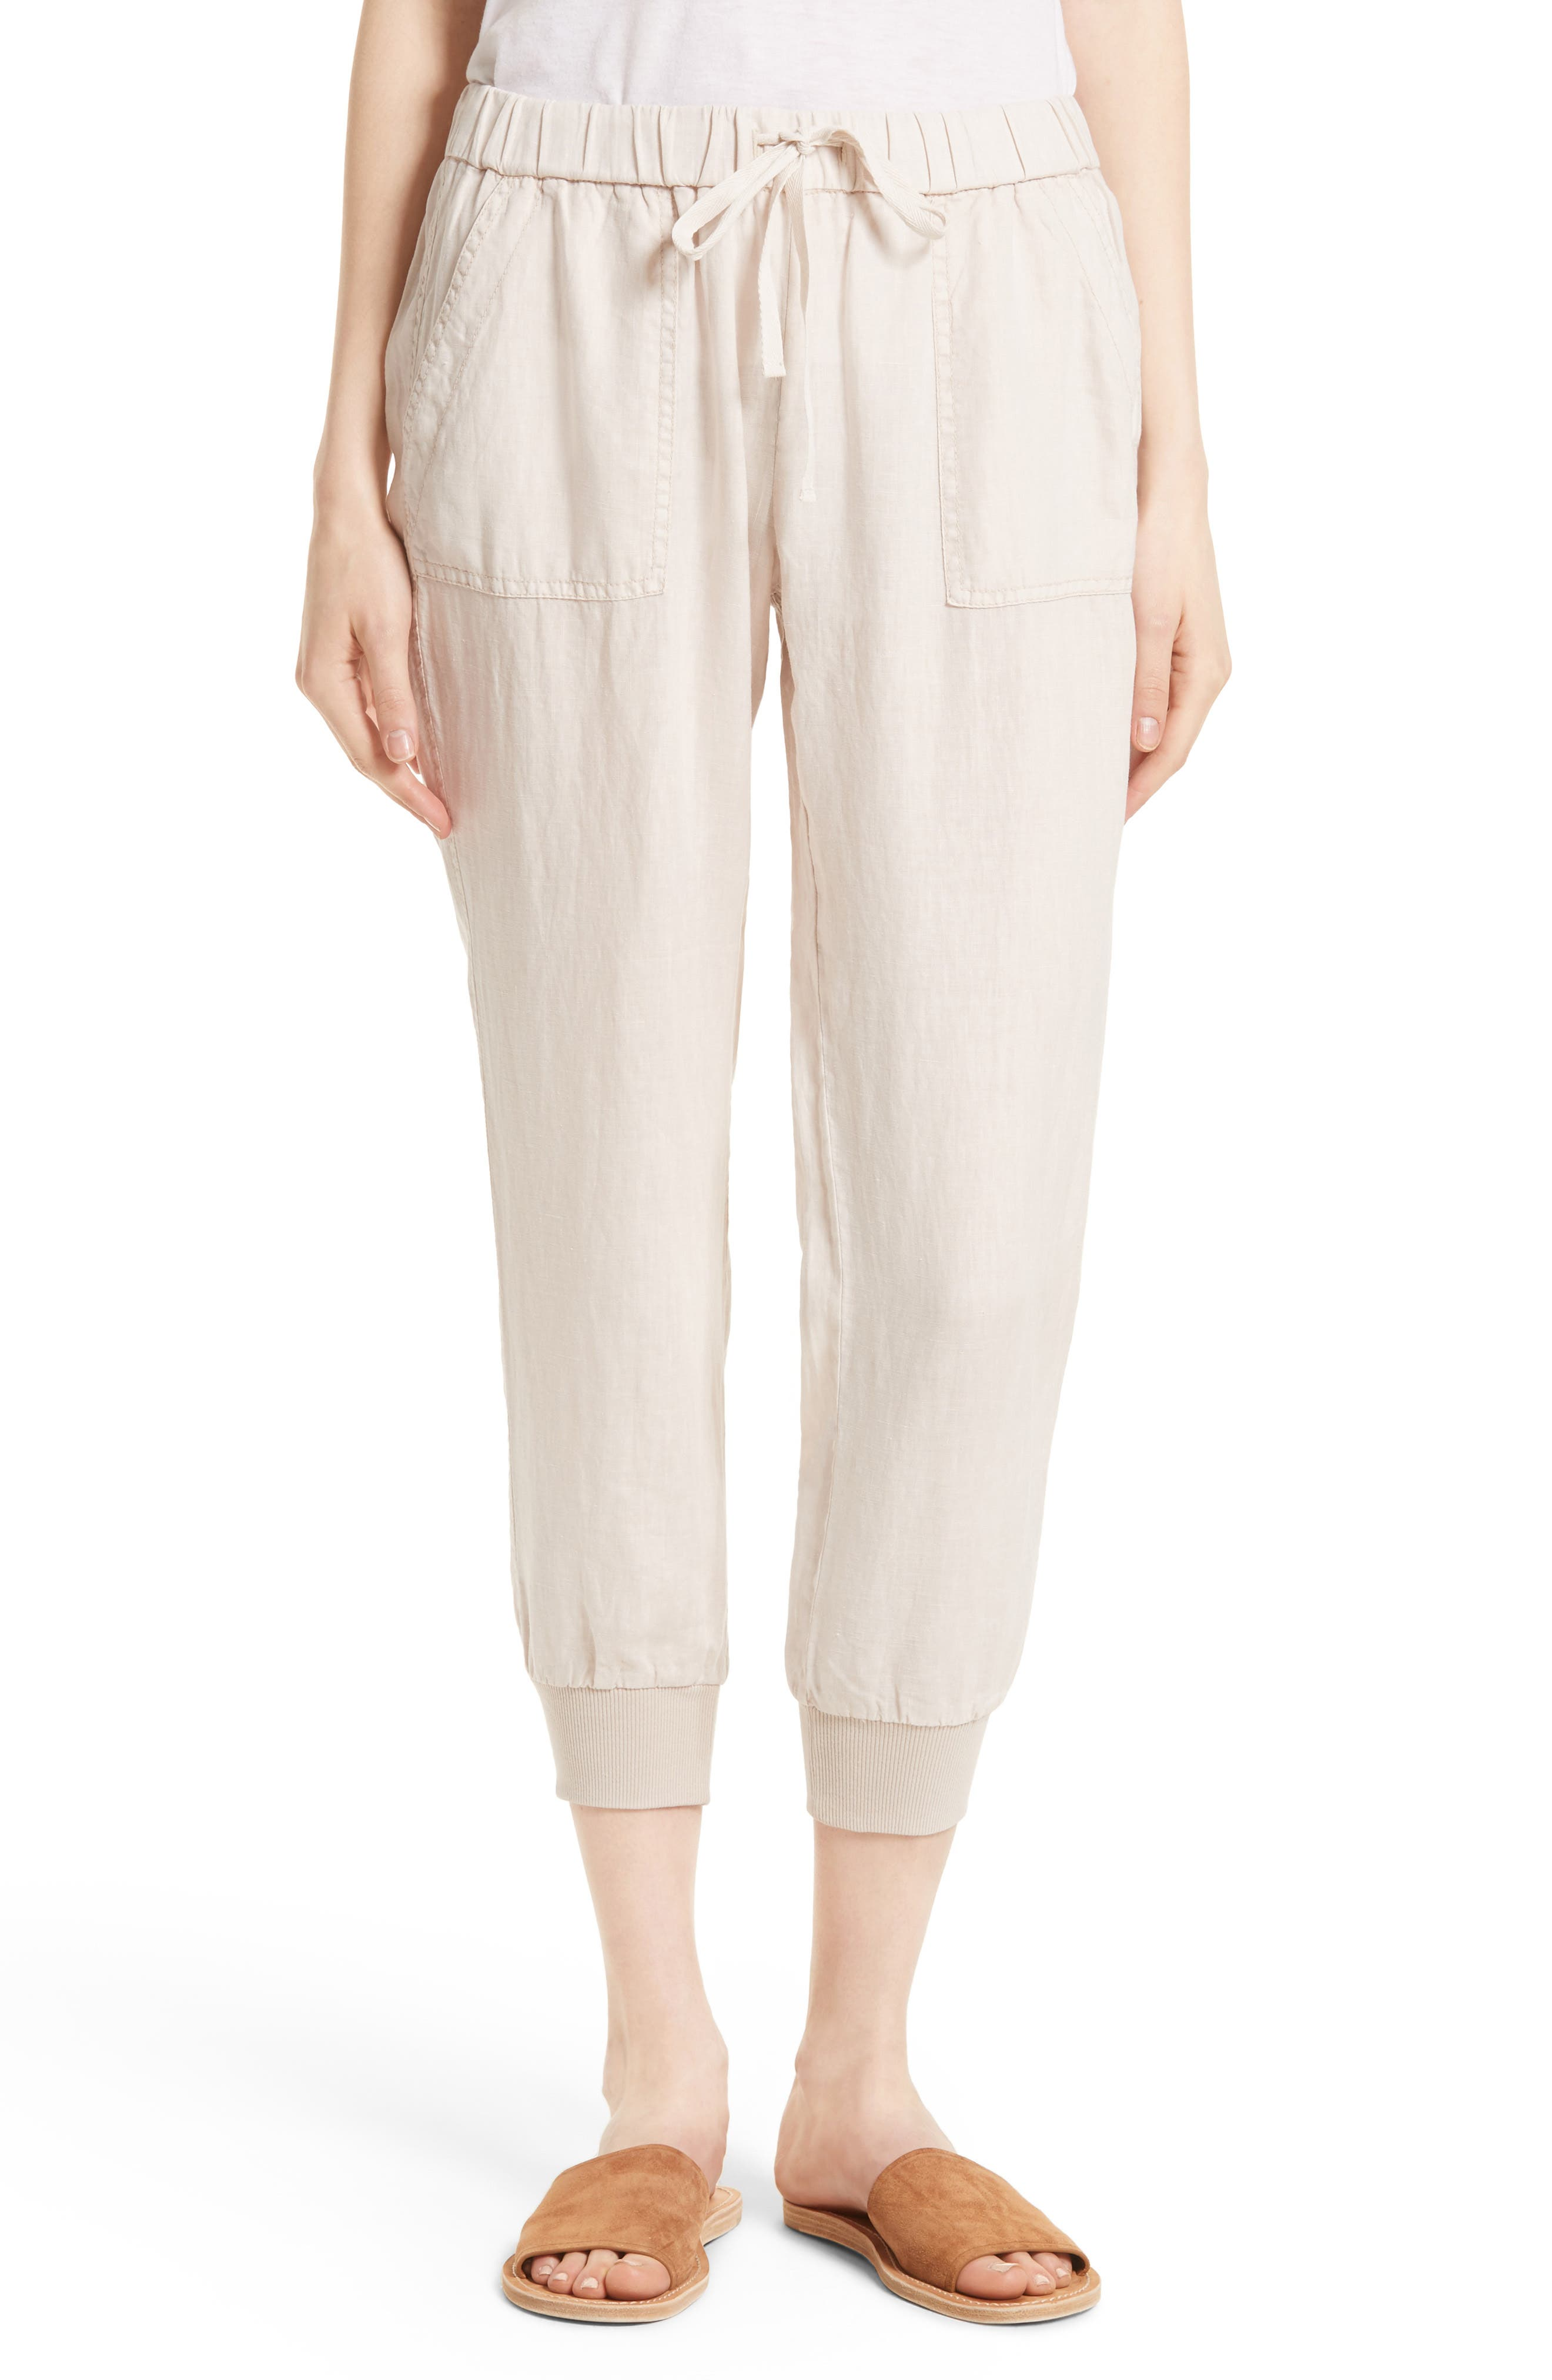 Alternate Image 1 Selected - Joie Cyntia Linen Pants